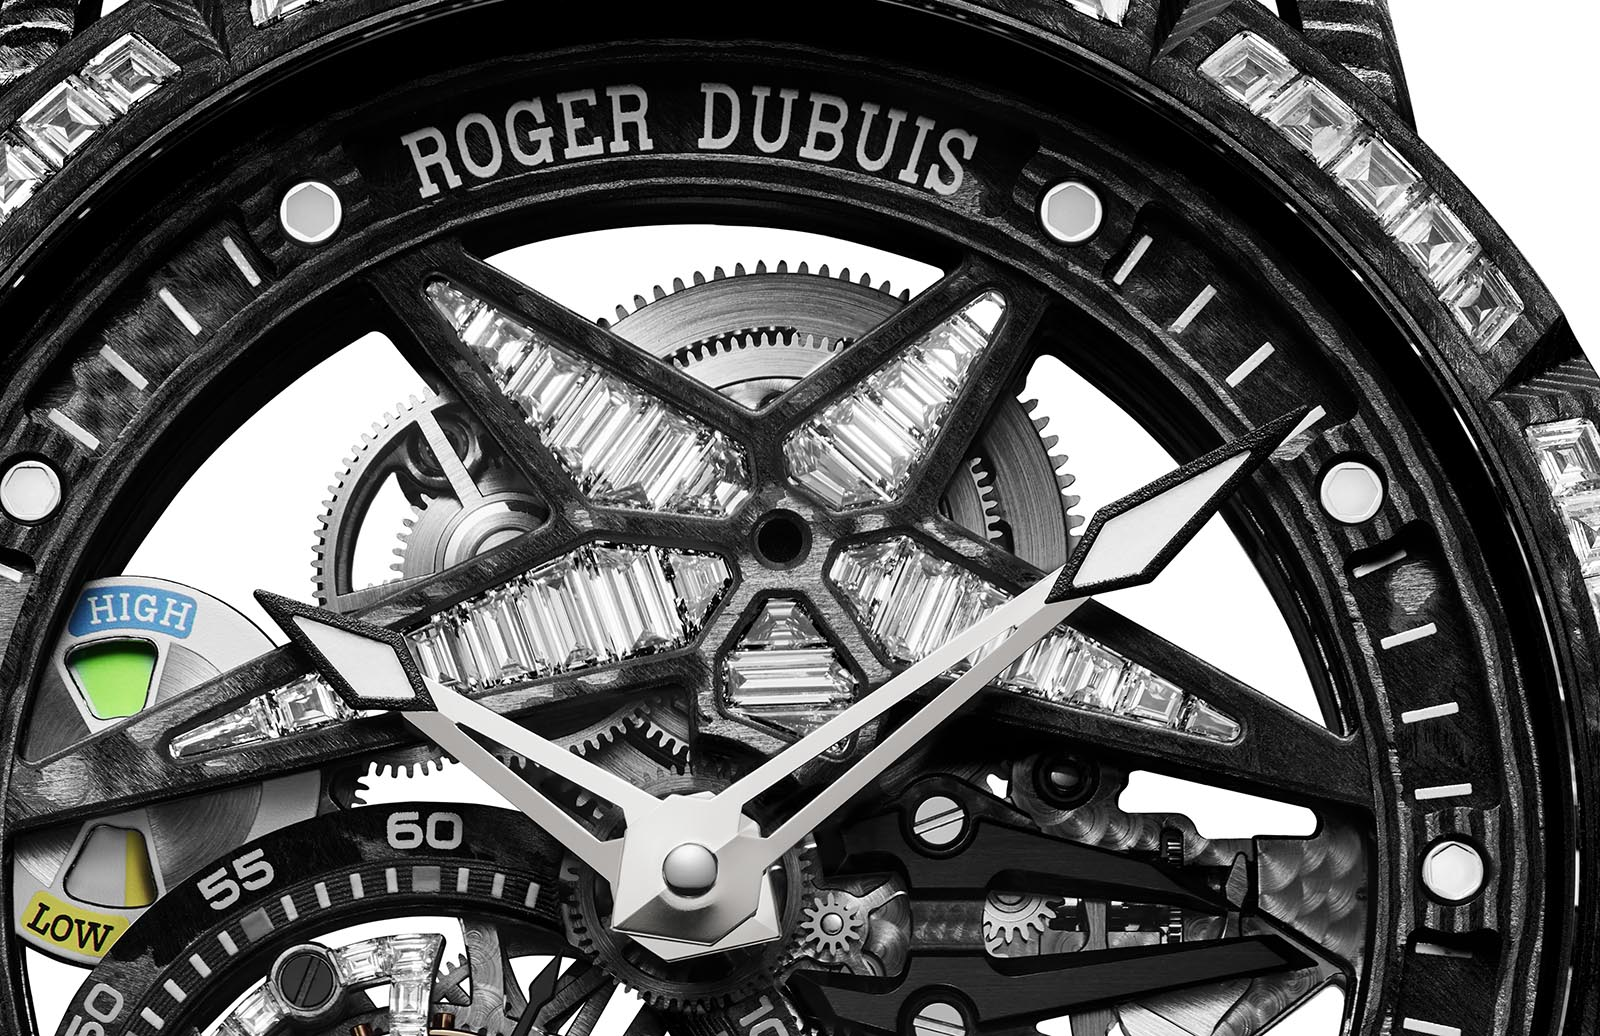 Roger Dubuis Excalibur Spider Ultimate Carbon 6